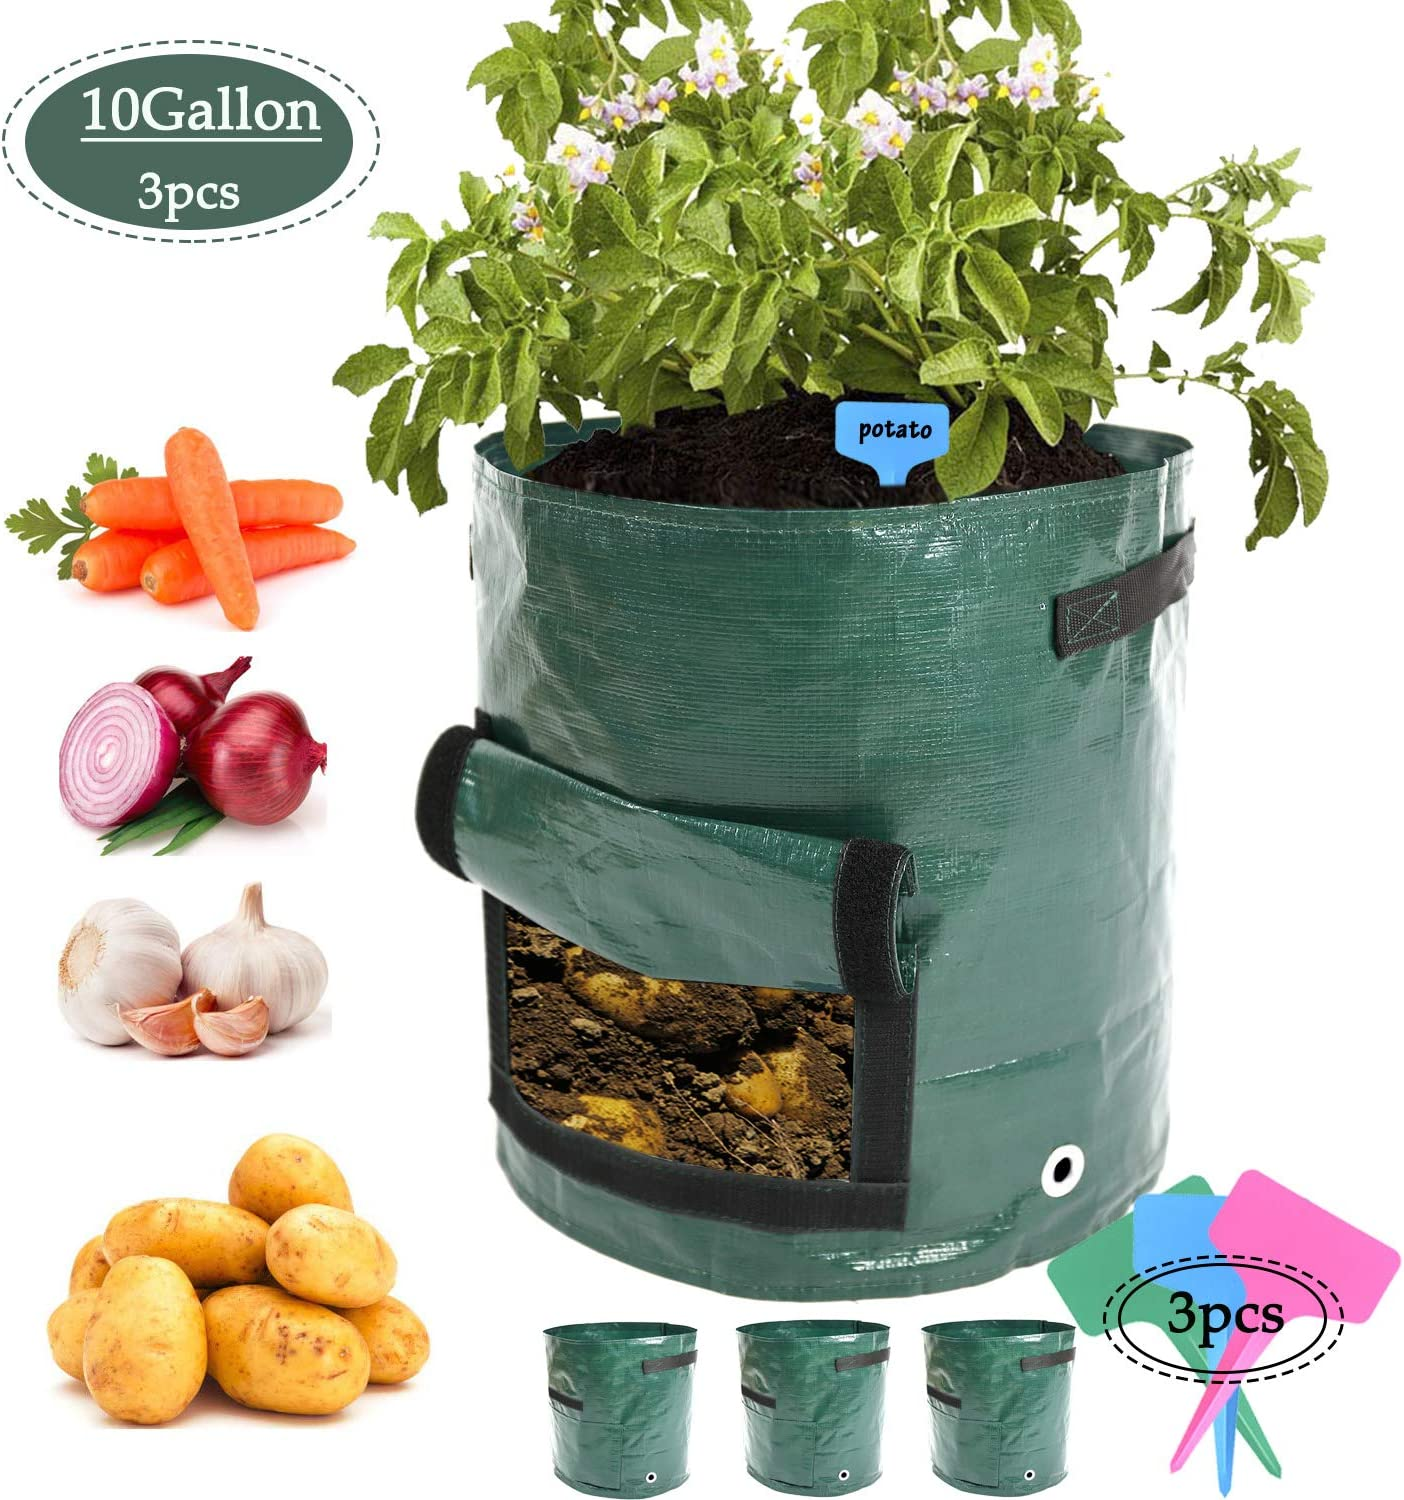 3pcs 10Gallon Potato Planter Bag,Garden Planting Grow Bags with Access Flap for Harvesting,Vegetable Planter Holes for Drainage,Durable Planter Bags with Handles for Vegetables 3, Dark Green-2